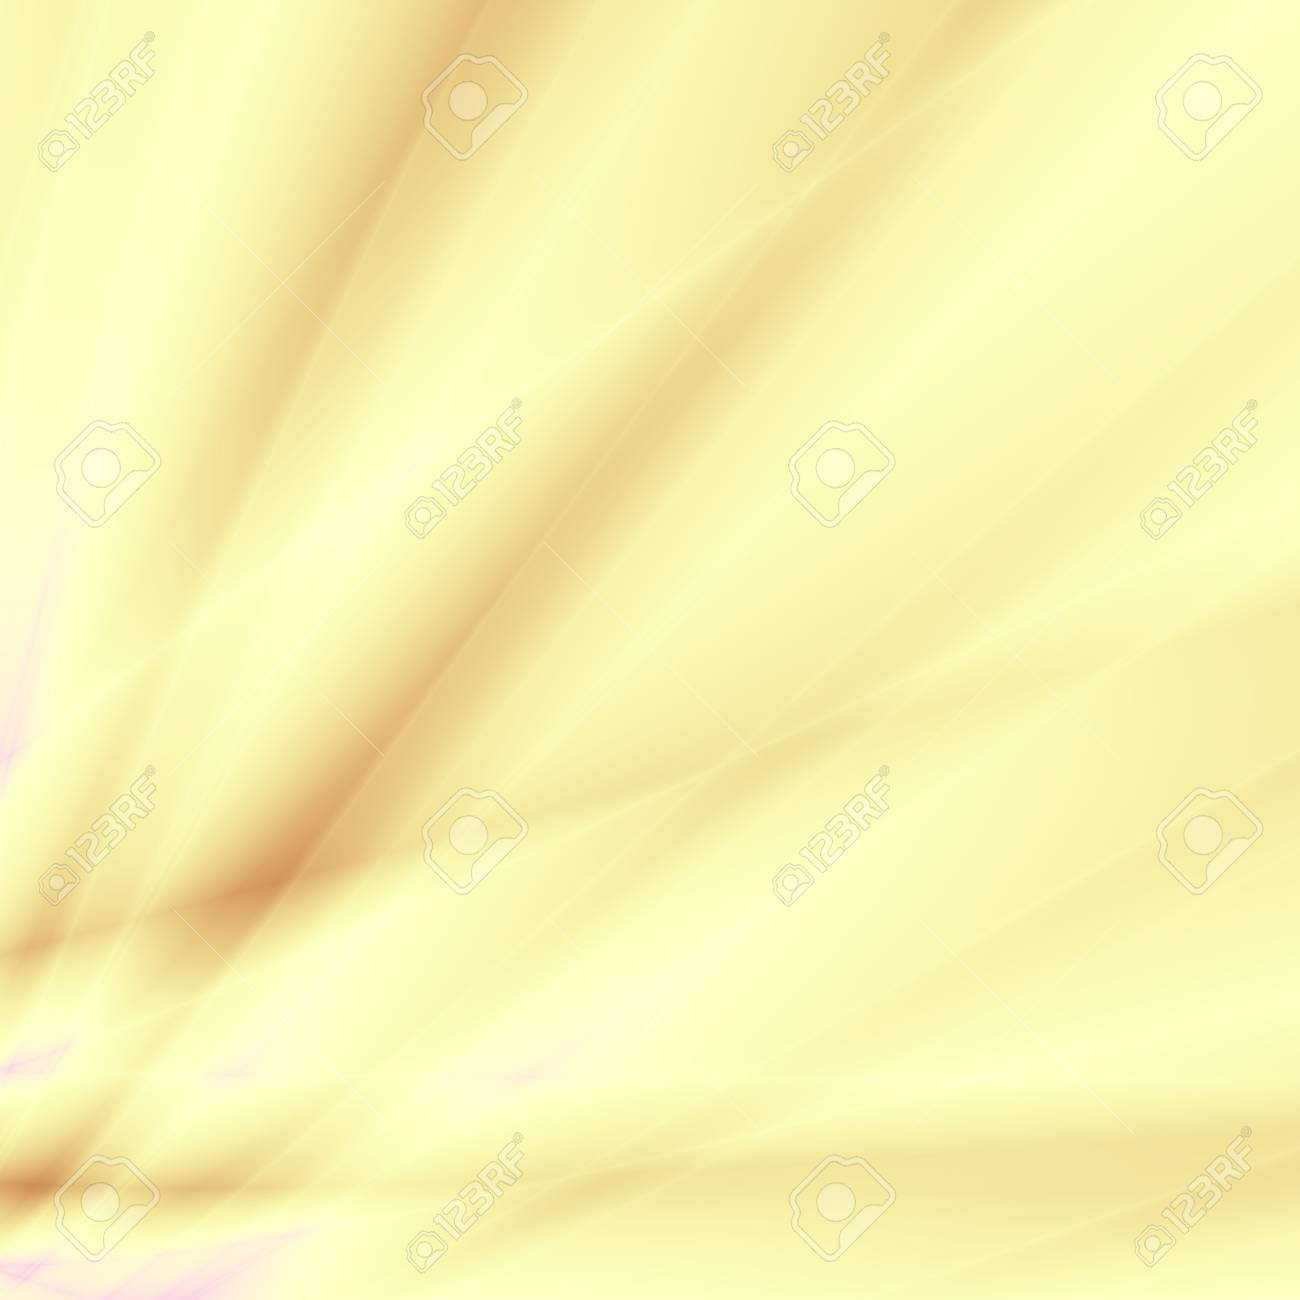 Bright Sunny Yellow Abstract Summer Backdrop Design Stock Photo Picture And Royalty Free Image Image 61654384